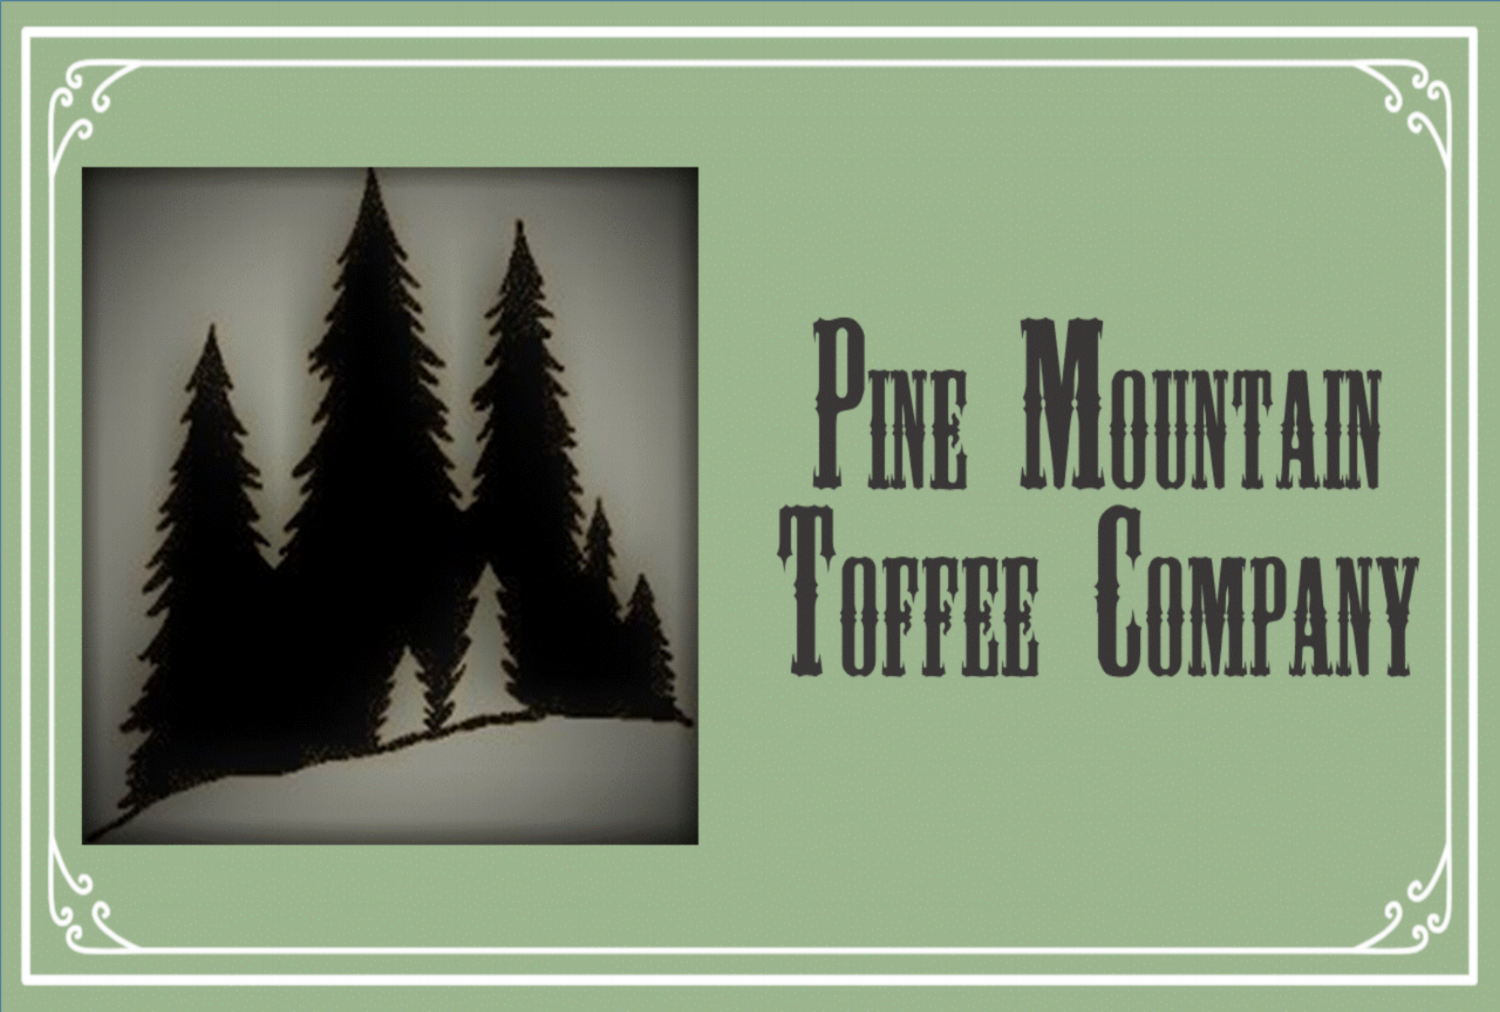 Pine Mountain Toffee Company